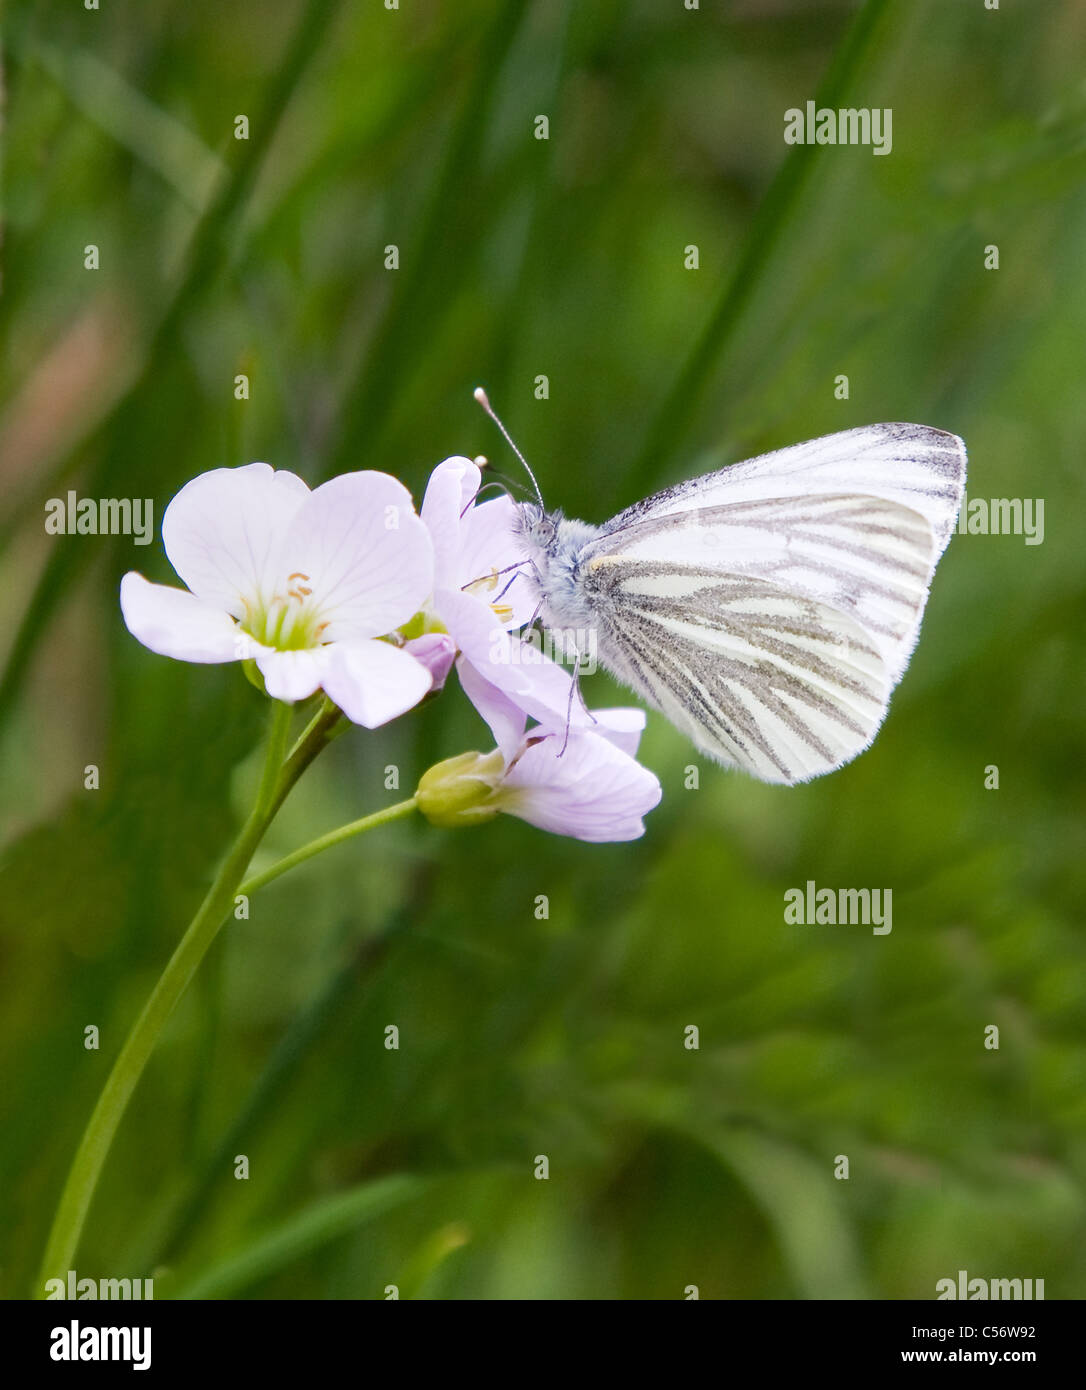 Green Veined White butterfly Pieris napi feeding on Lady's Smock or Cuckoo Flower - Stock Image